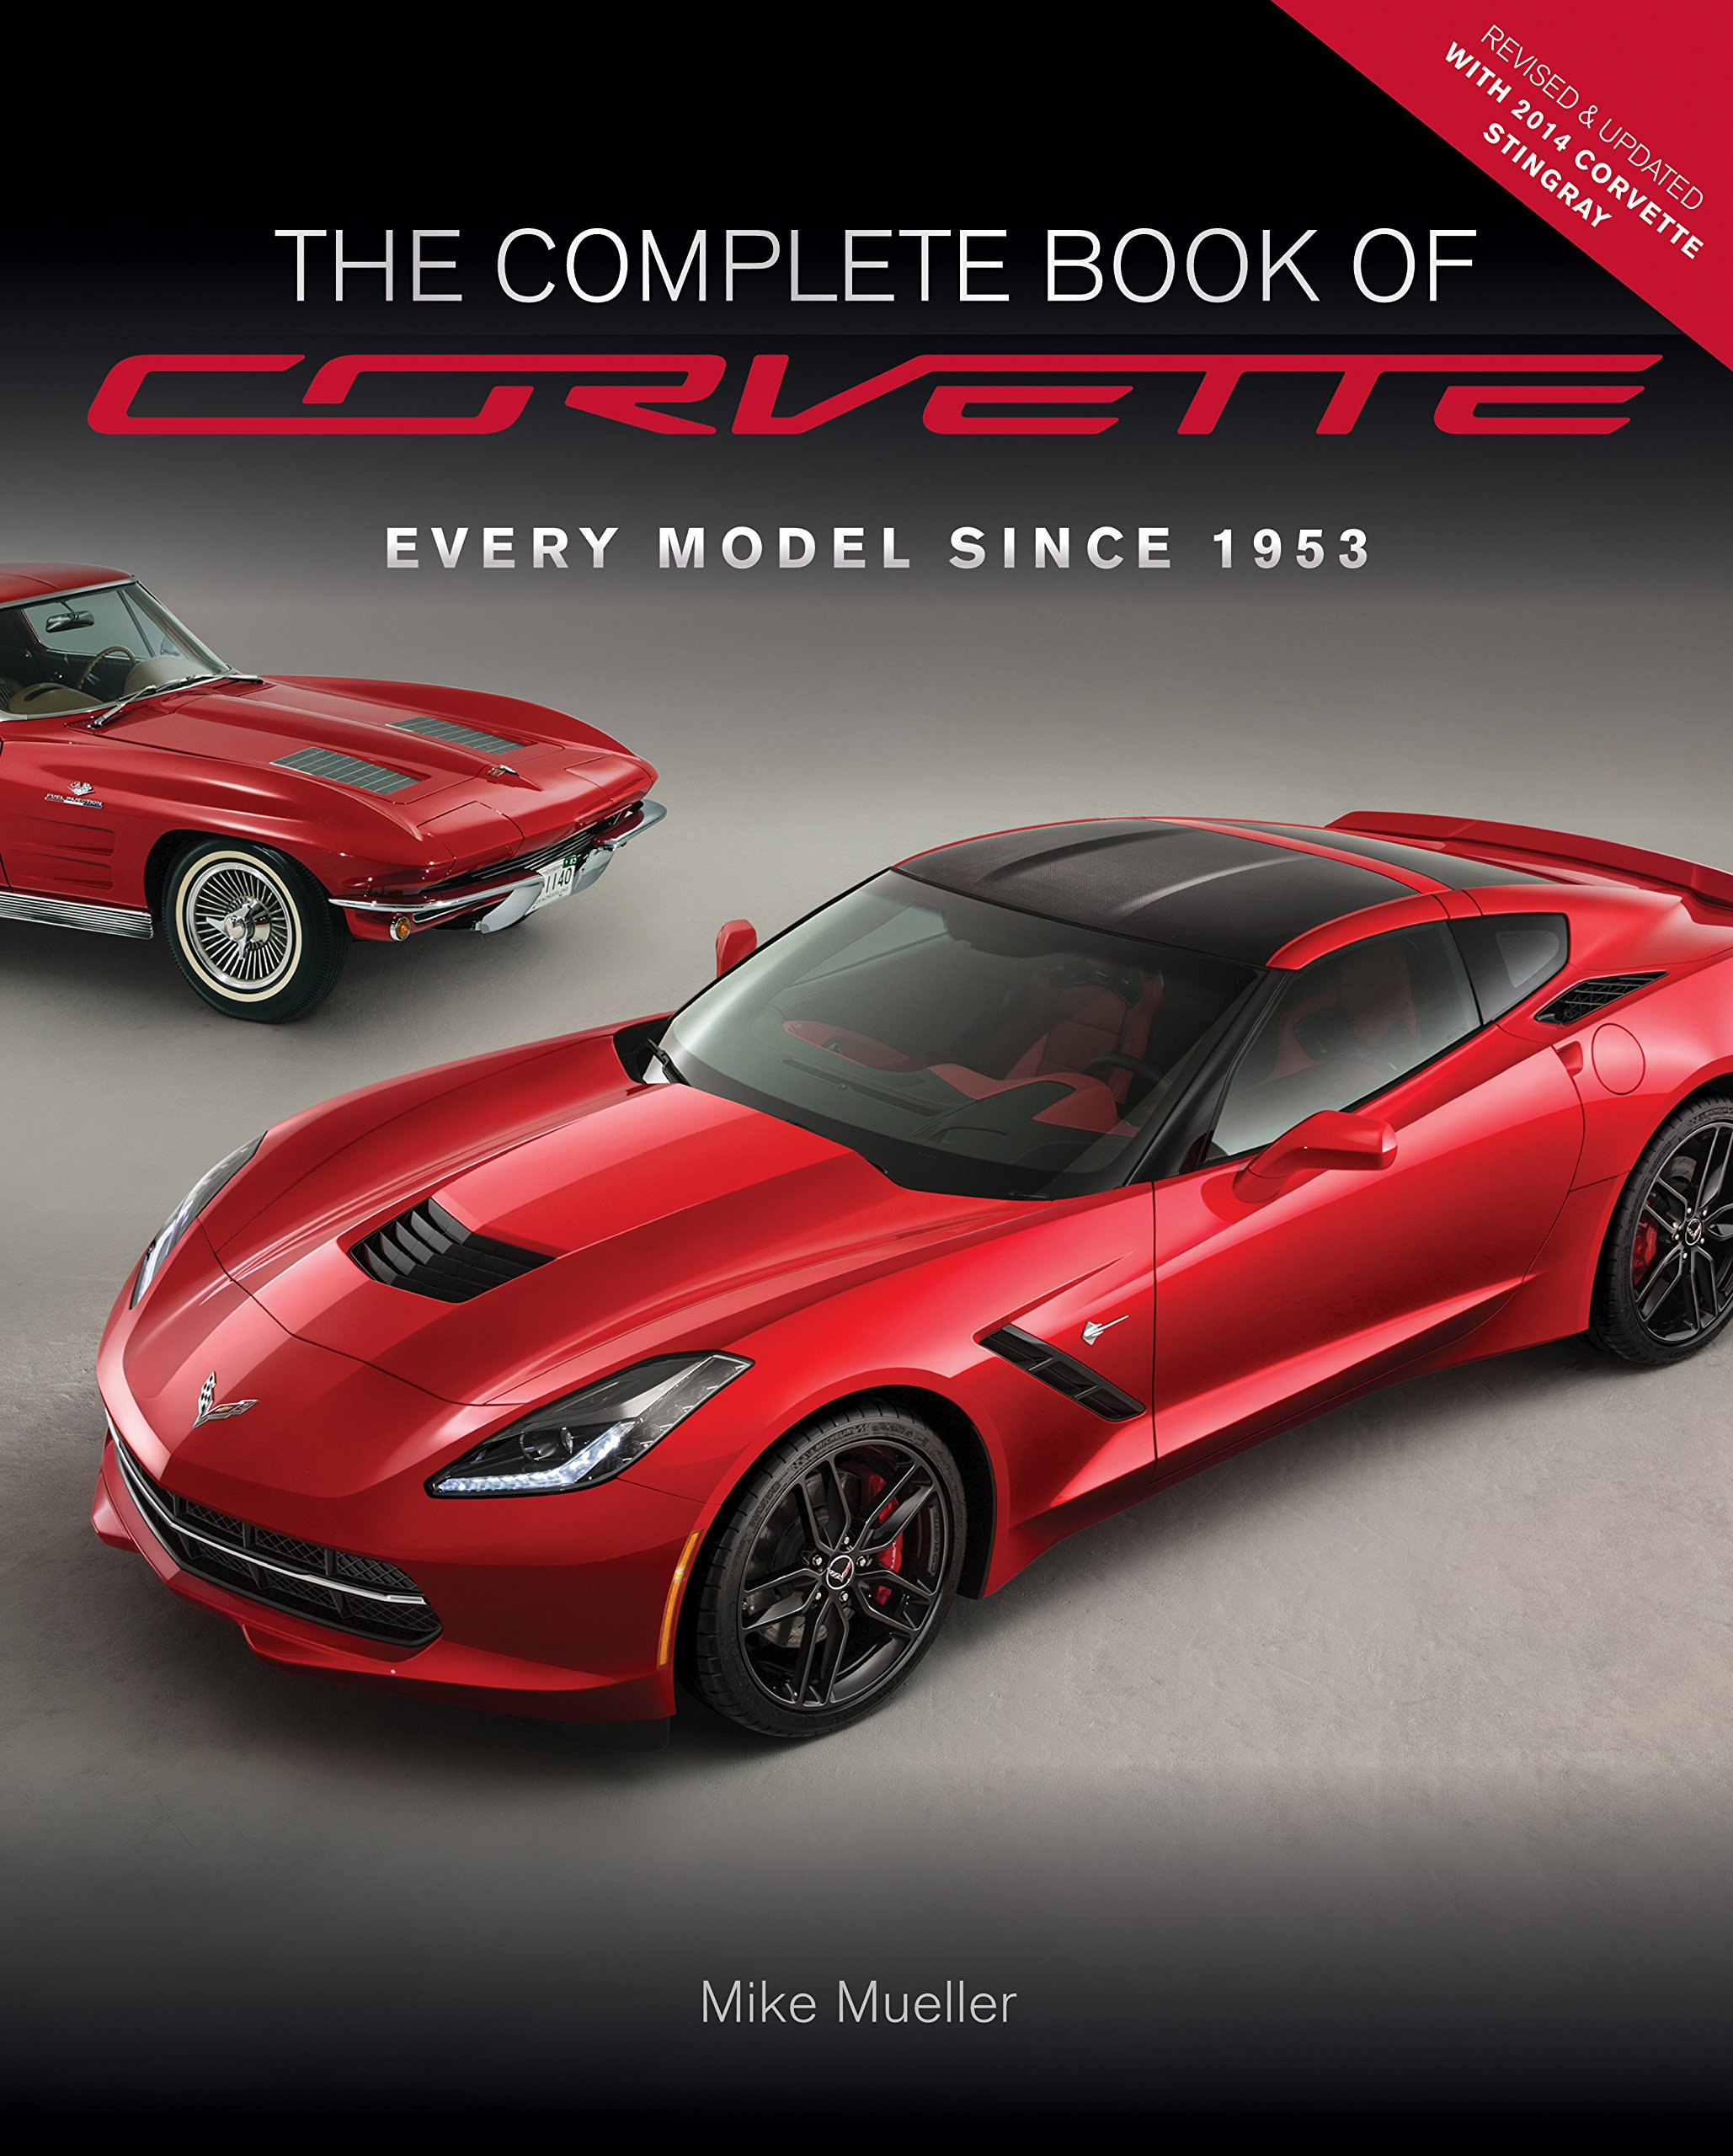 The Complete Book Of Corvette   Revised U0026 Updated: Every Model Since 1953  (Complete Book Series): Mike Mueller: 2015760345740: Amazon.com: Books